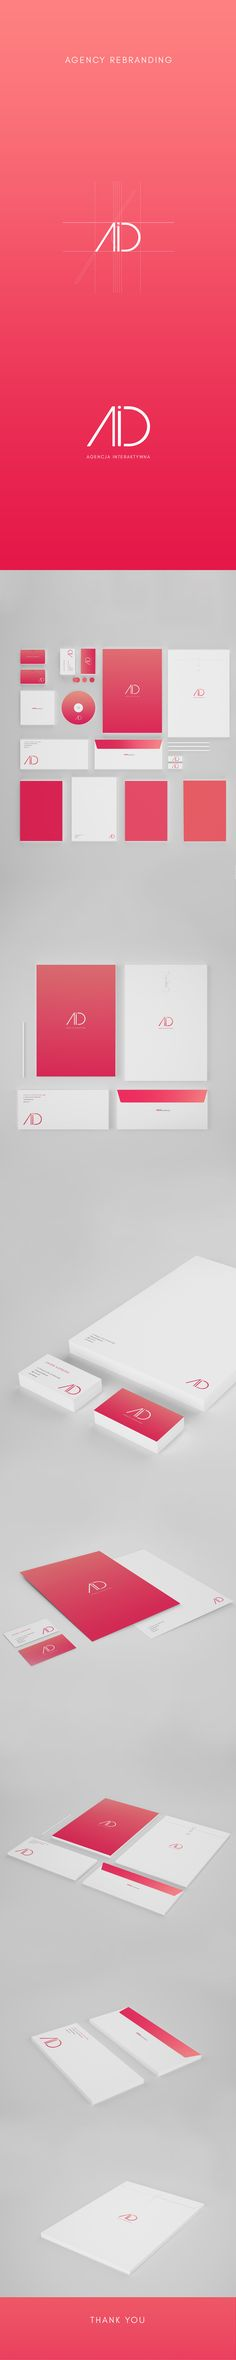 Agency Branding on Behance